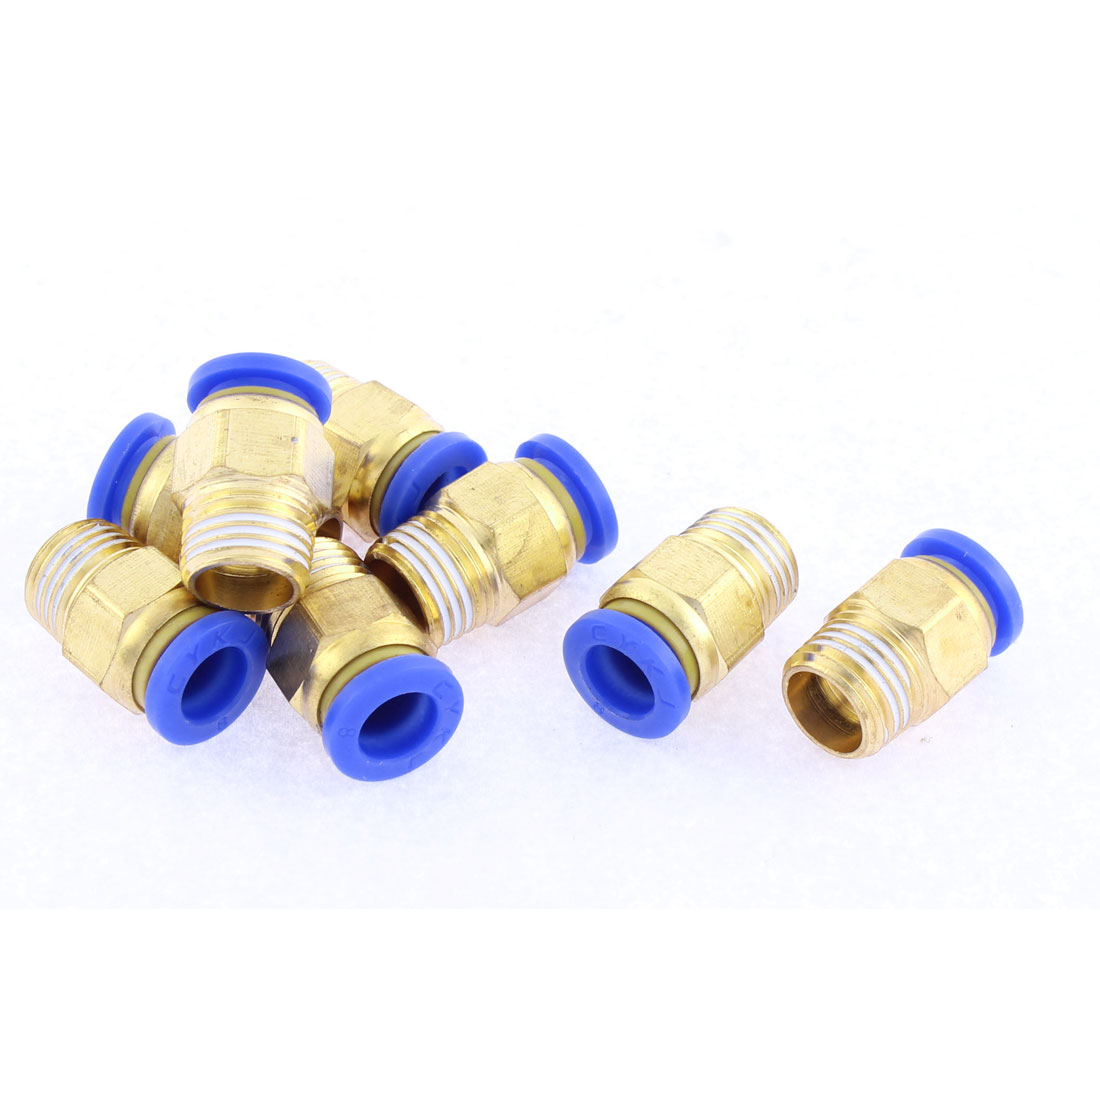 8 Pcs 8mm Tube to 1/4BSP Thread Push in Quick Connect Coupler Fittings PC8-02